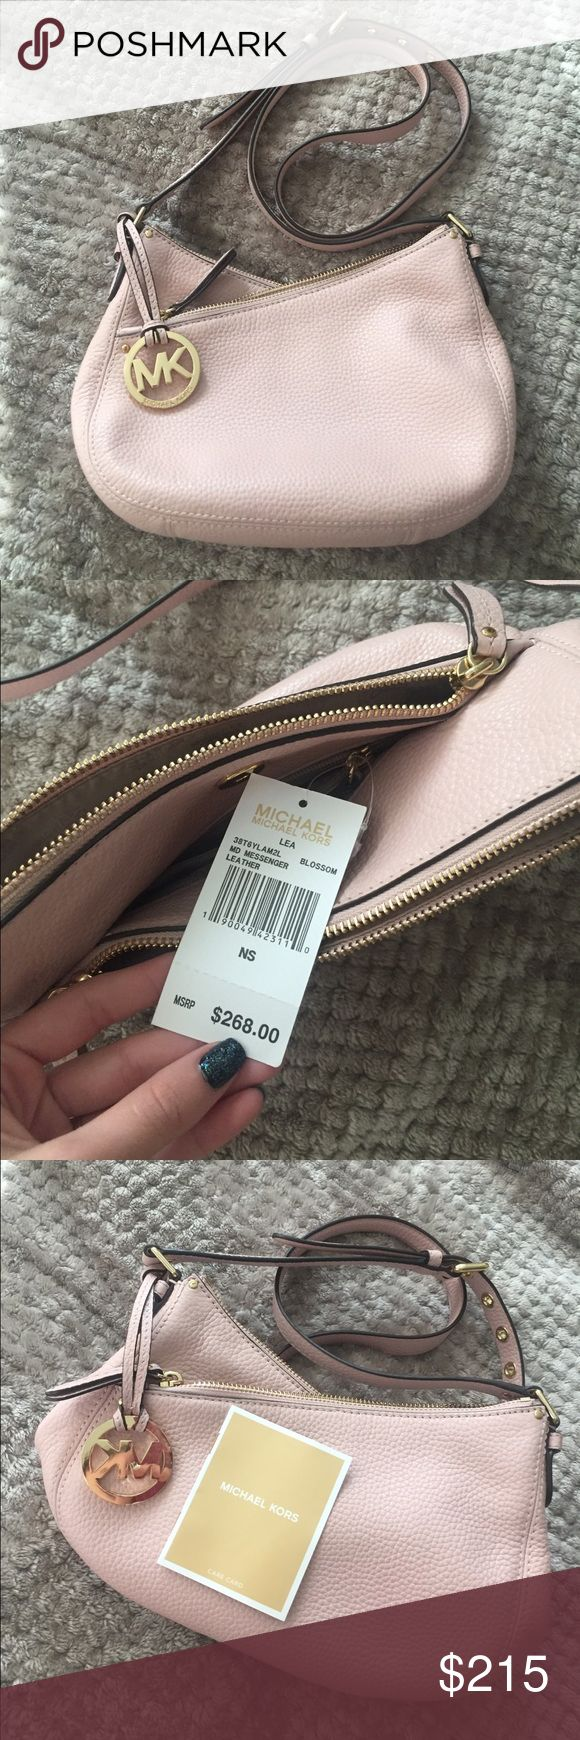 LAST ONE!!! Consider all offers!!! Obviously never used (NWT). There is a free gift with purchase (fashionphile dustbag)! Genuine leather and amazing condition. Color blossom. Willing to accept offers for this holiday season!!! Leave an offer that I just can't resist KORS Michael Kors Bags Crossbody Bags